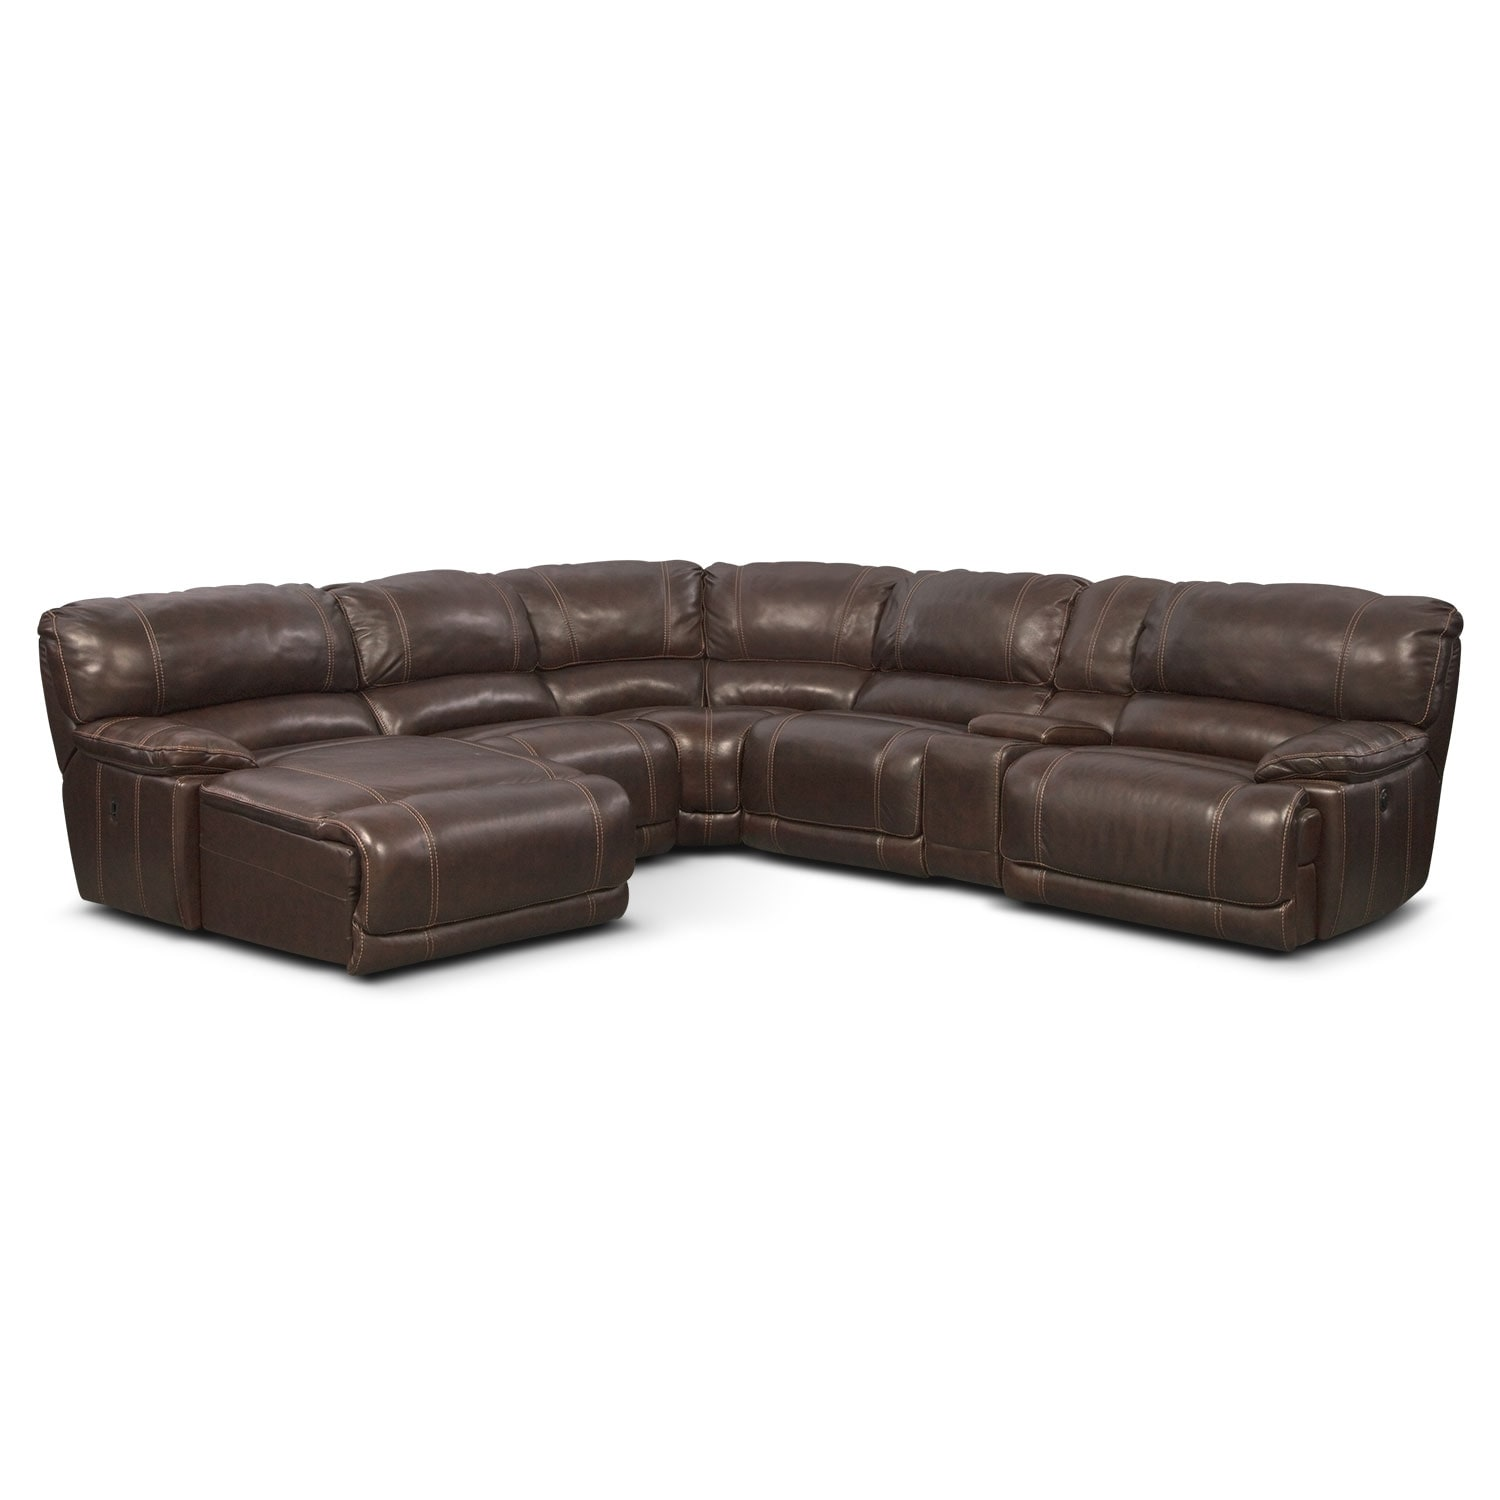 St malo 6 piece power reclining sectional with left for Brown couch with chaise